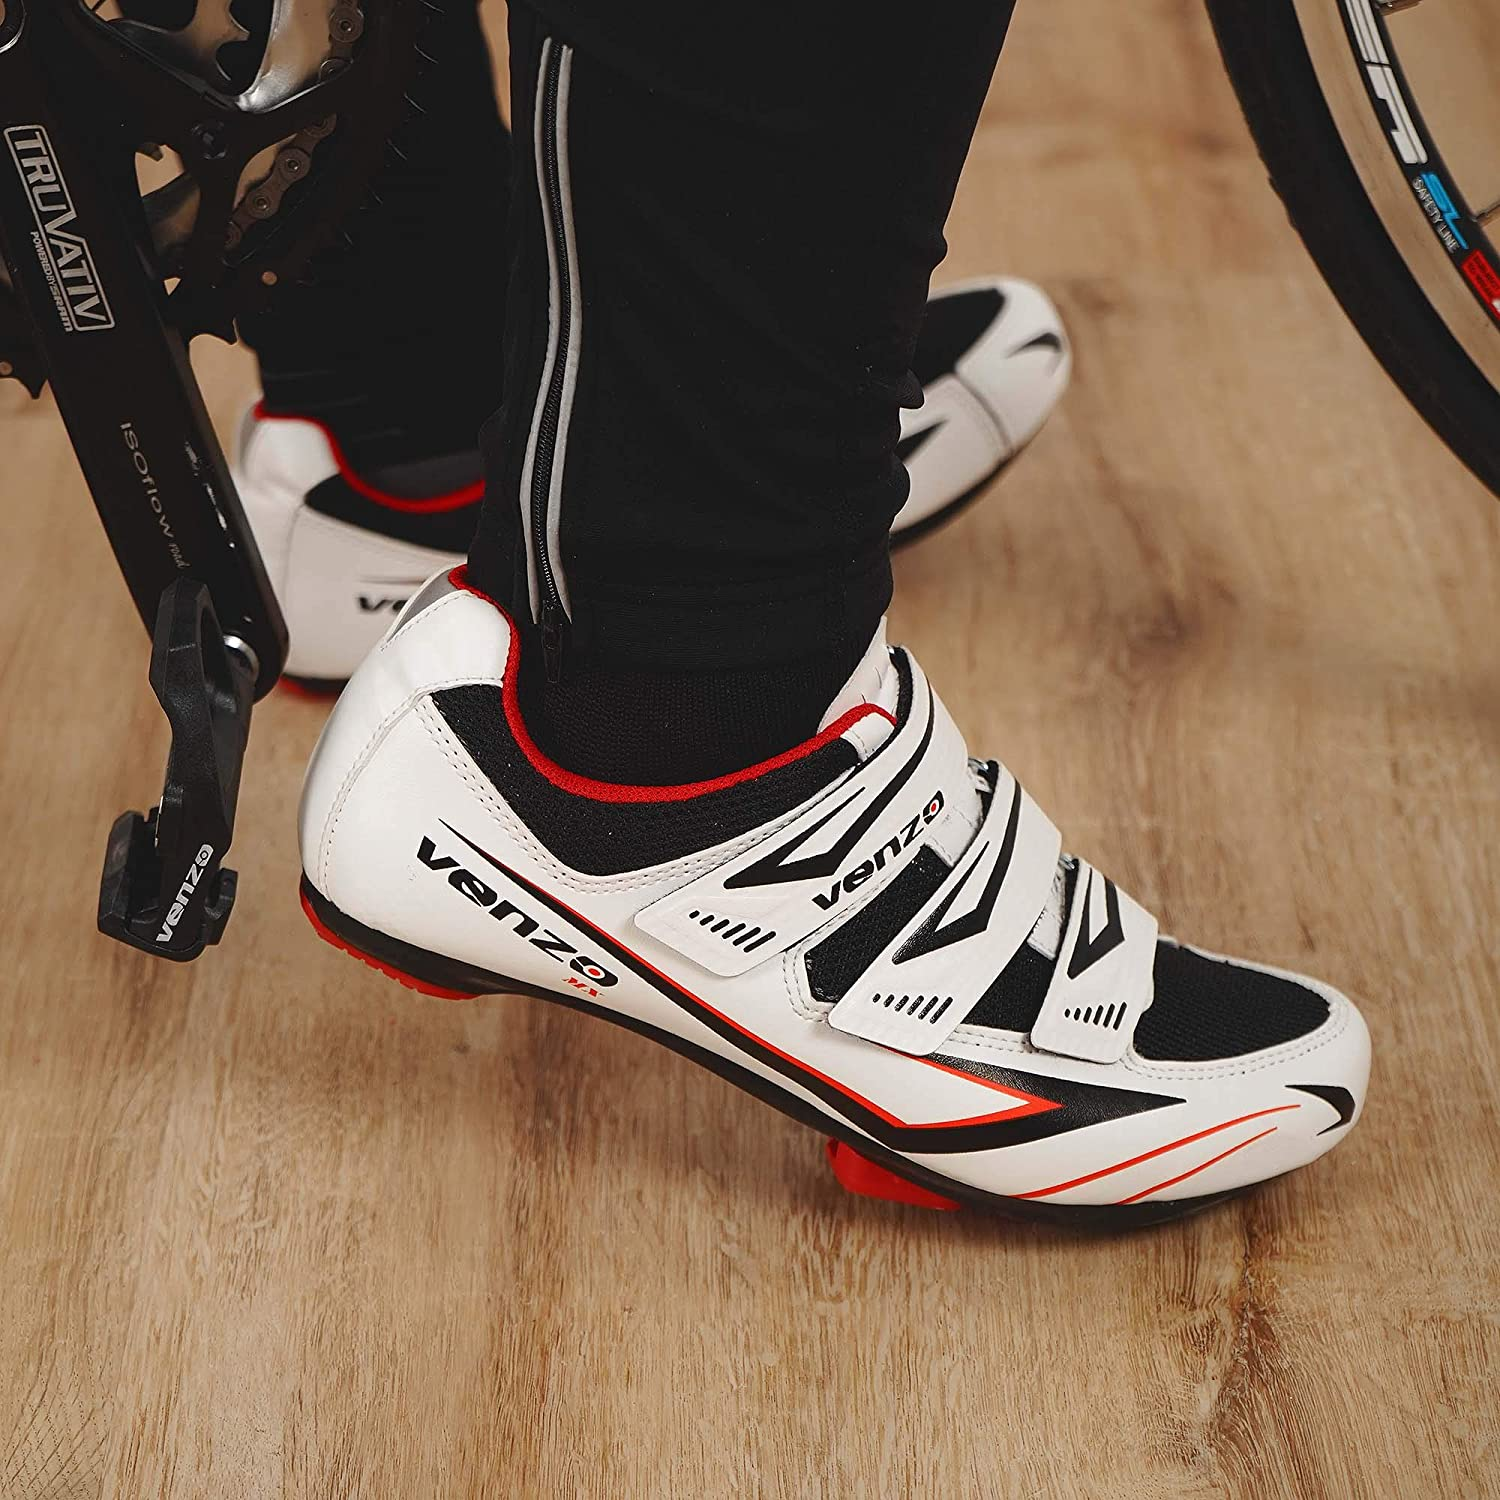 Venzo Bicycle Mens or Womens Road Cycling Riding Shoes with Look KEO Compatible Sealed Bearing Pedals /& Cheats Perfect for Road Racing Bikes White Color 3 Velcro Straps